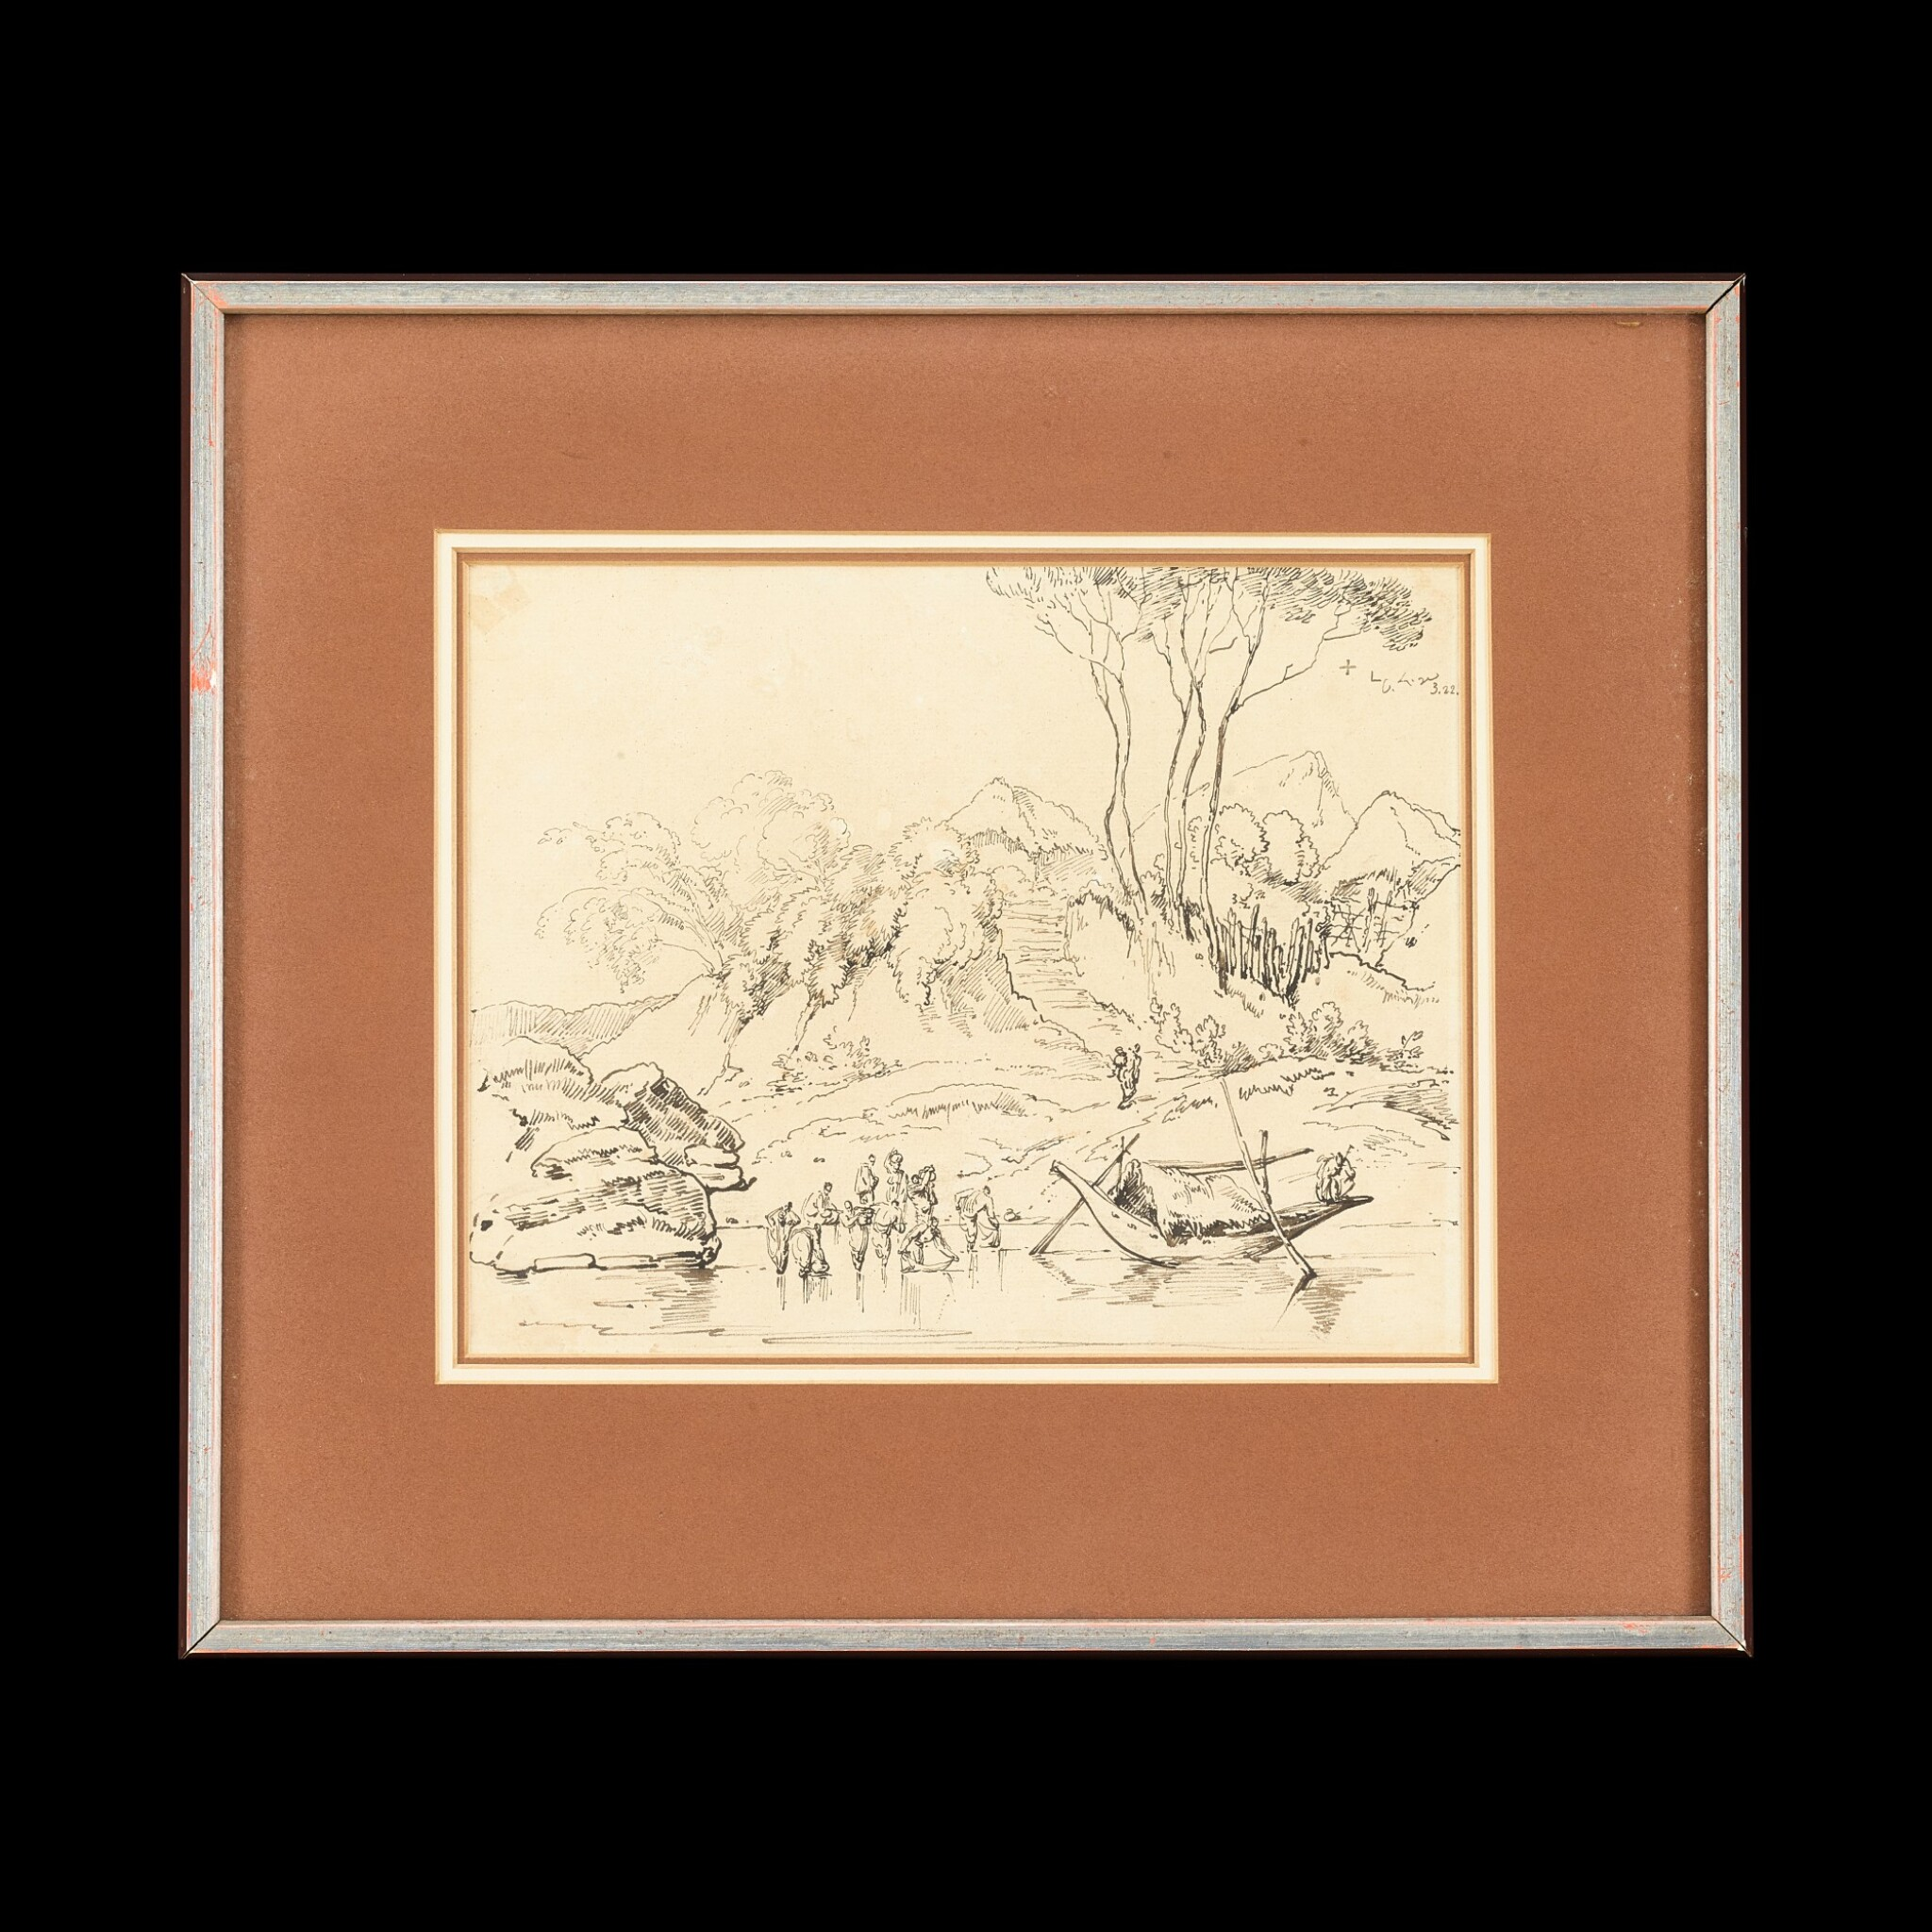 View full screen - View 1 of Lot 201. George Chinnery (1774-1852), 1822 Indian Figures and a Boat at a River | 錢納利(1774-1852年) 1822年   素描印度河岸風光圖   紙本鋼筆及墨水 鏡框.